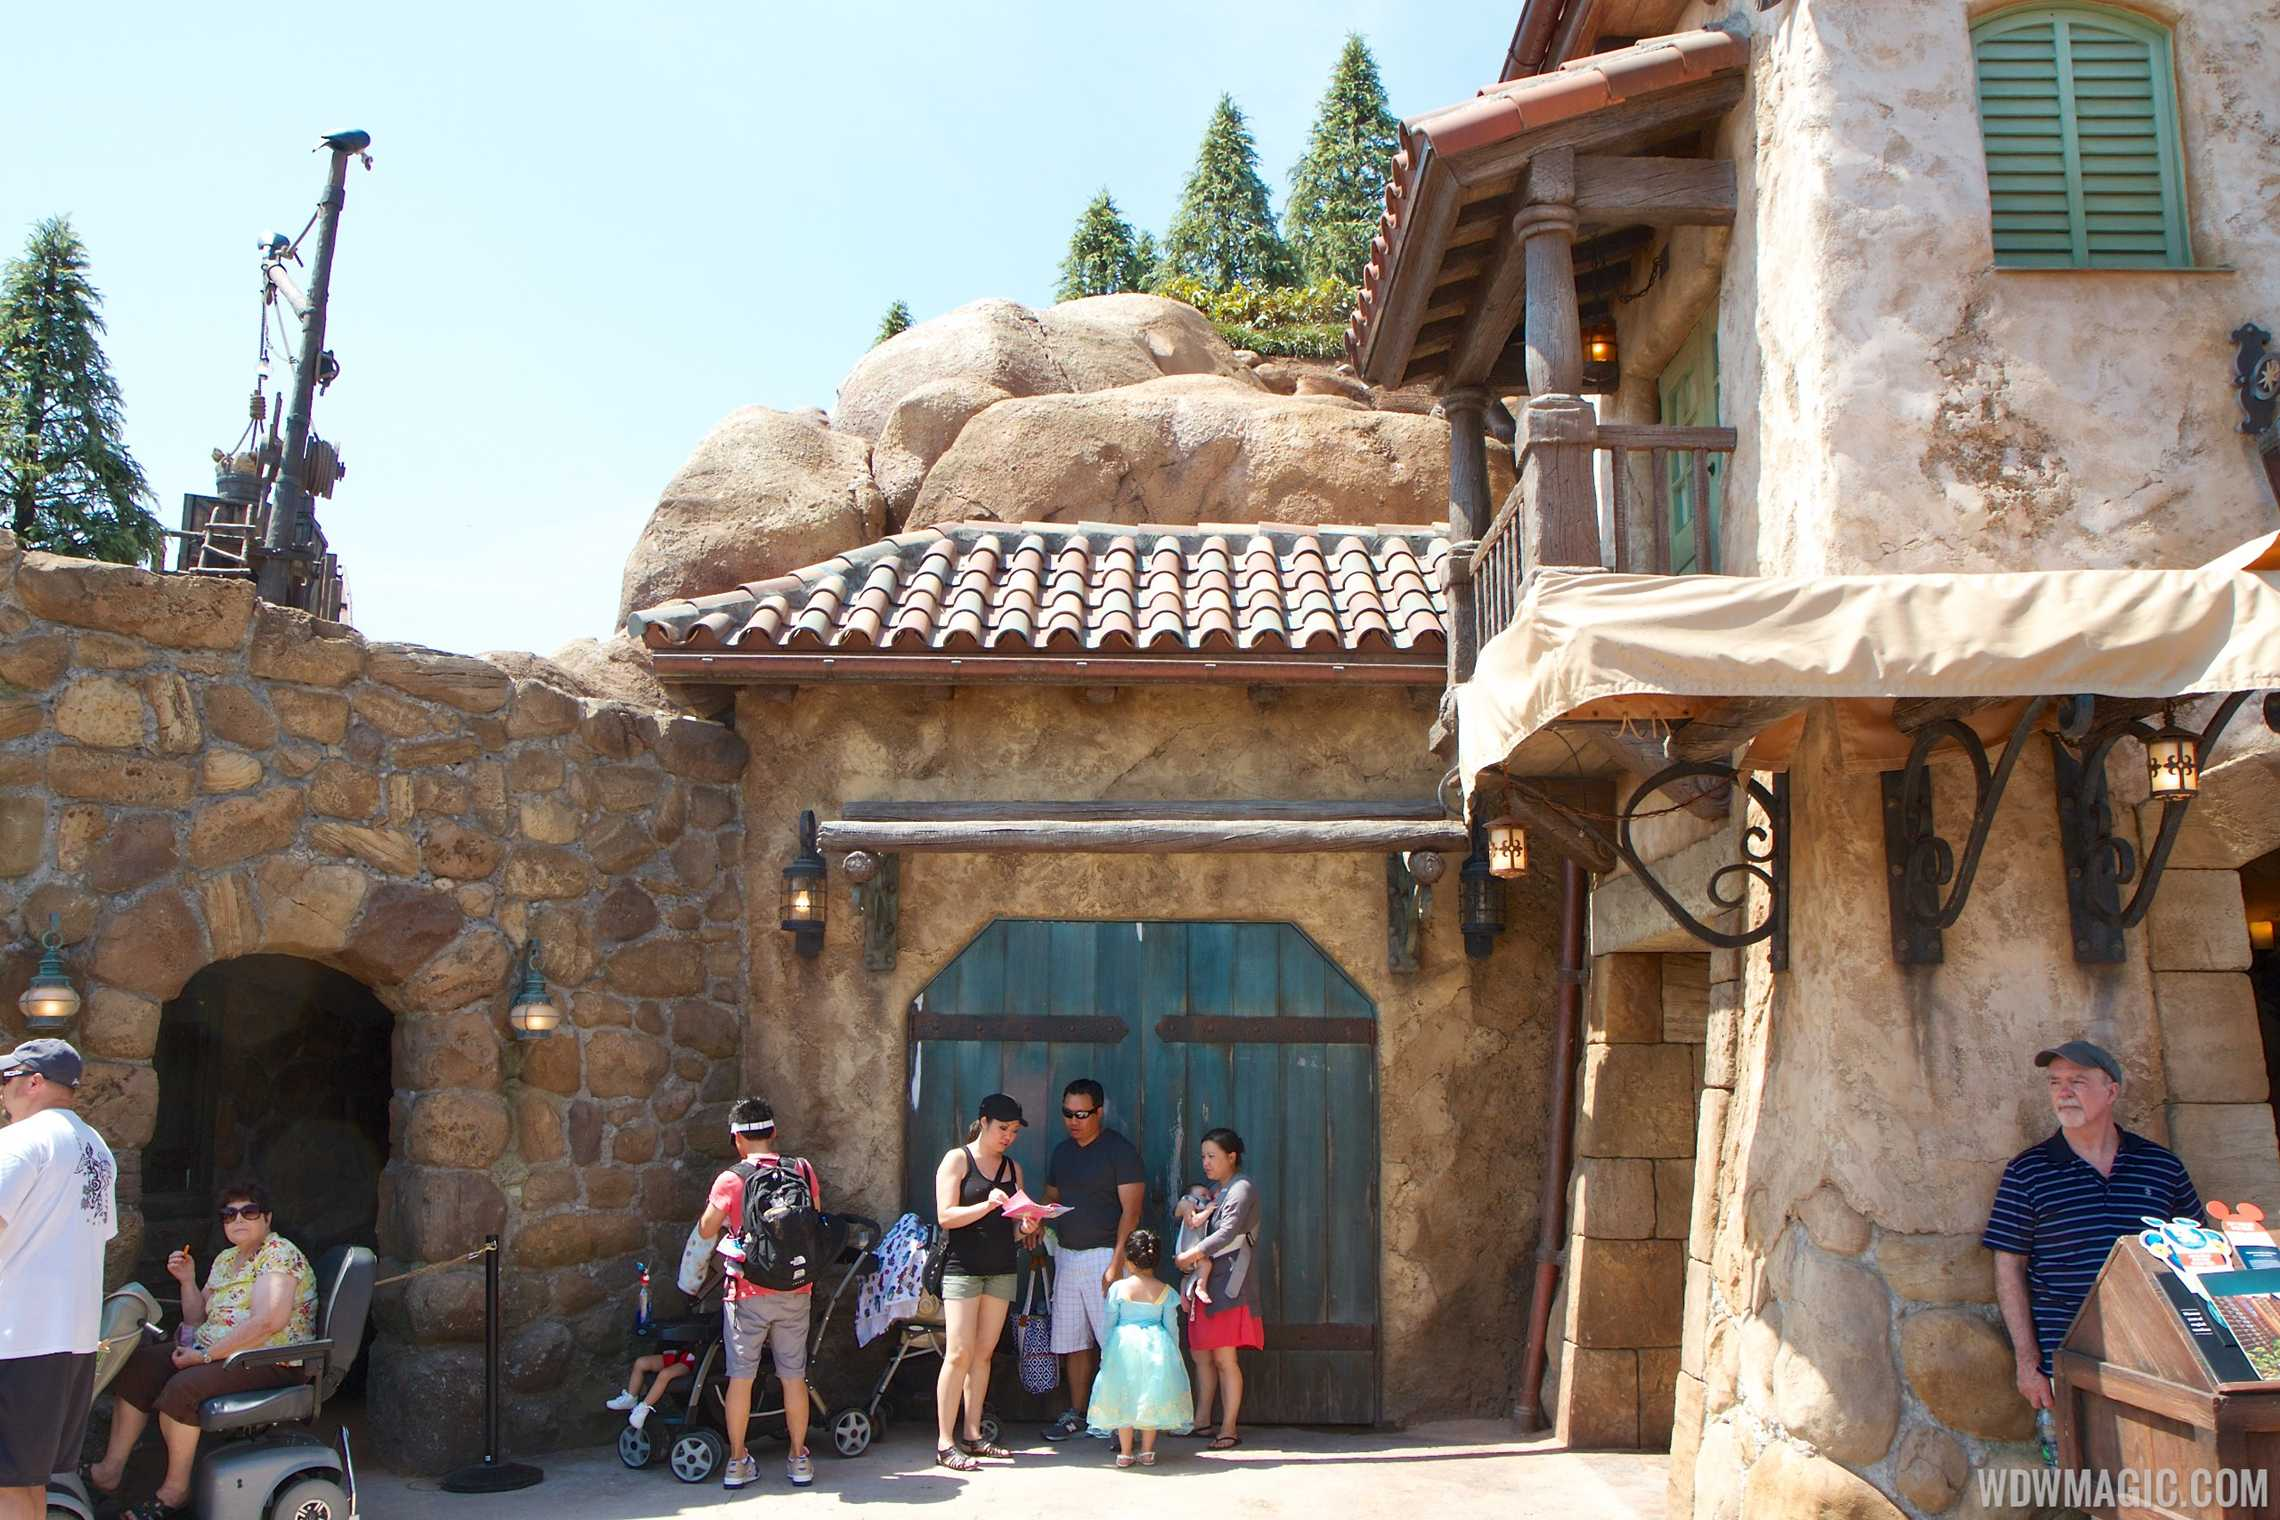 Seven Dwarfs Mine Train rear